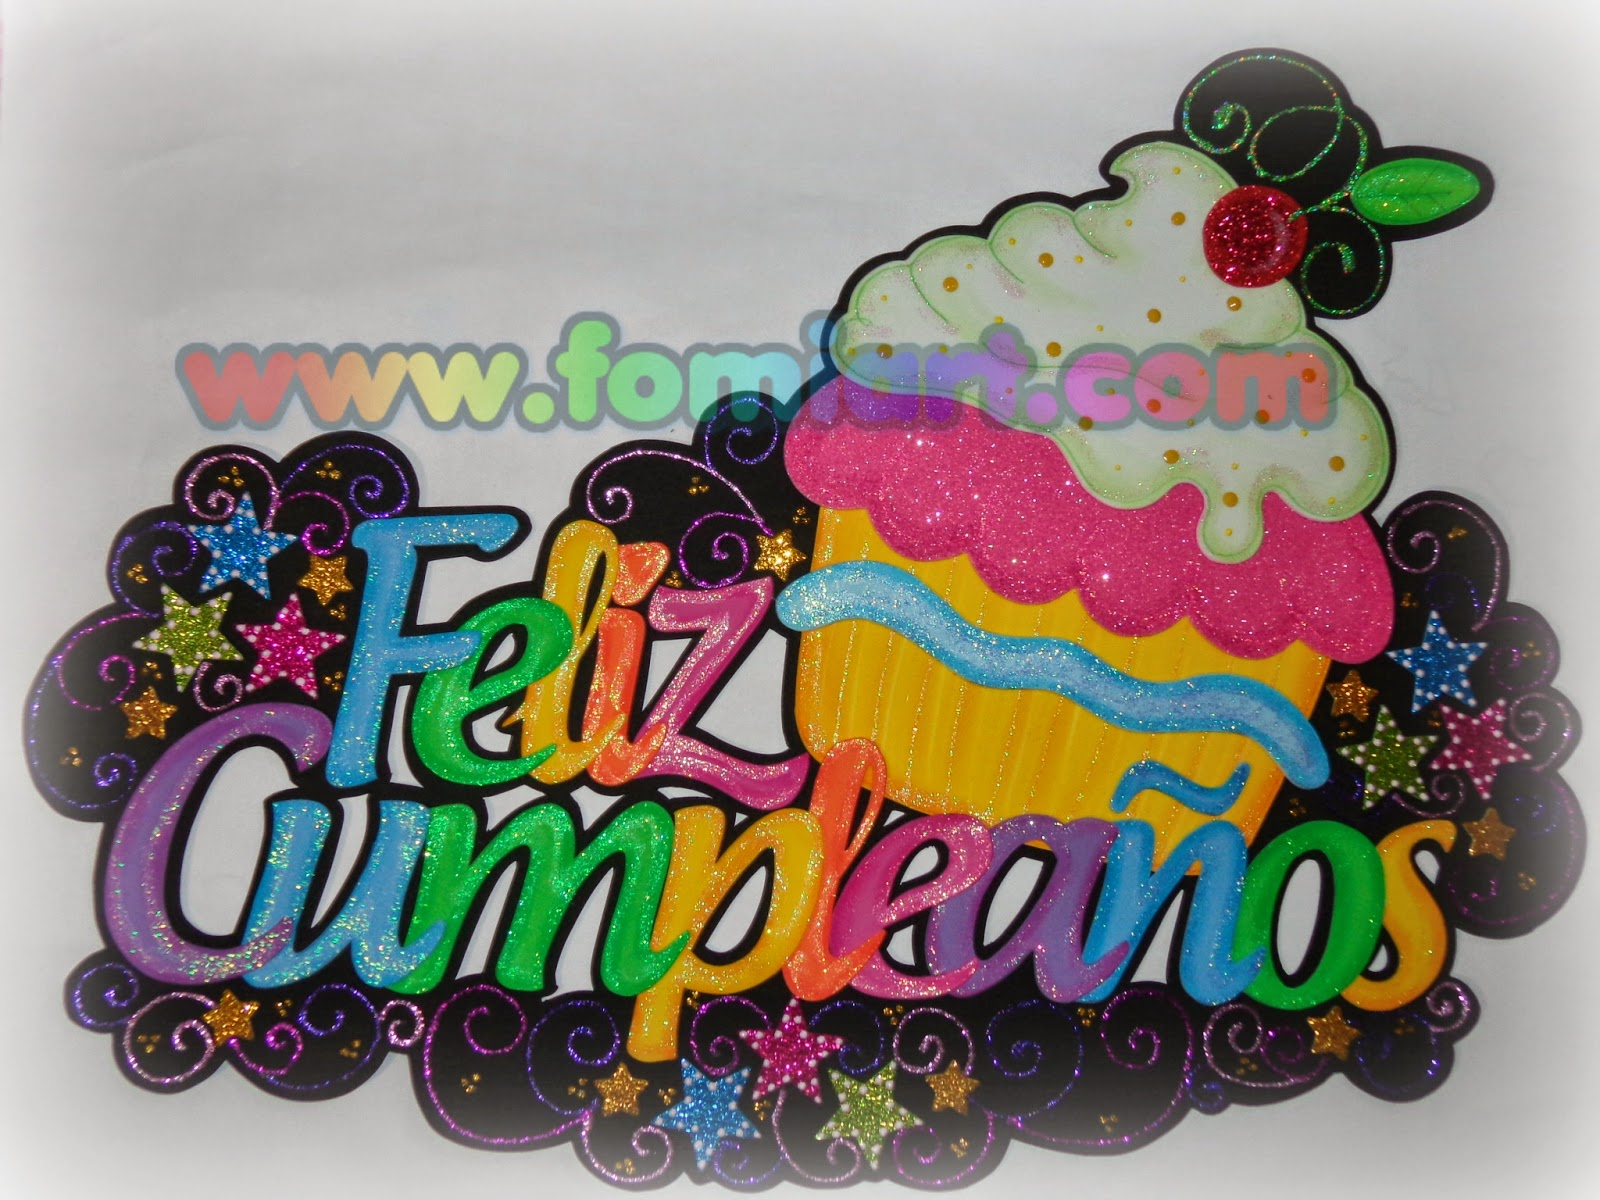 manualidades, decoracion en foamy